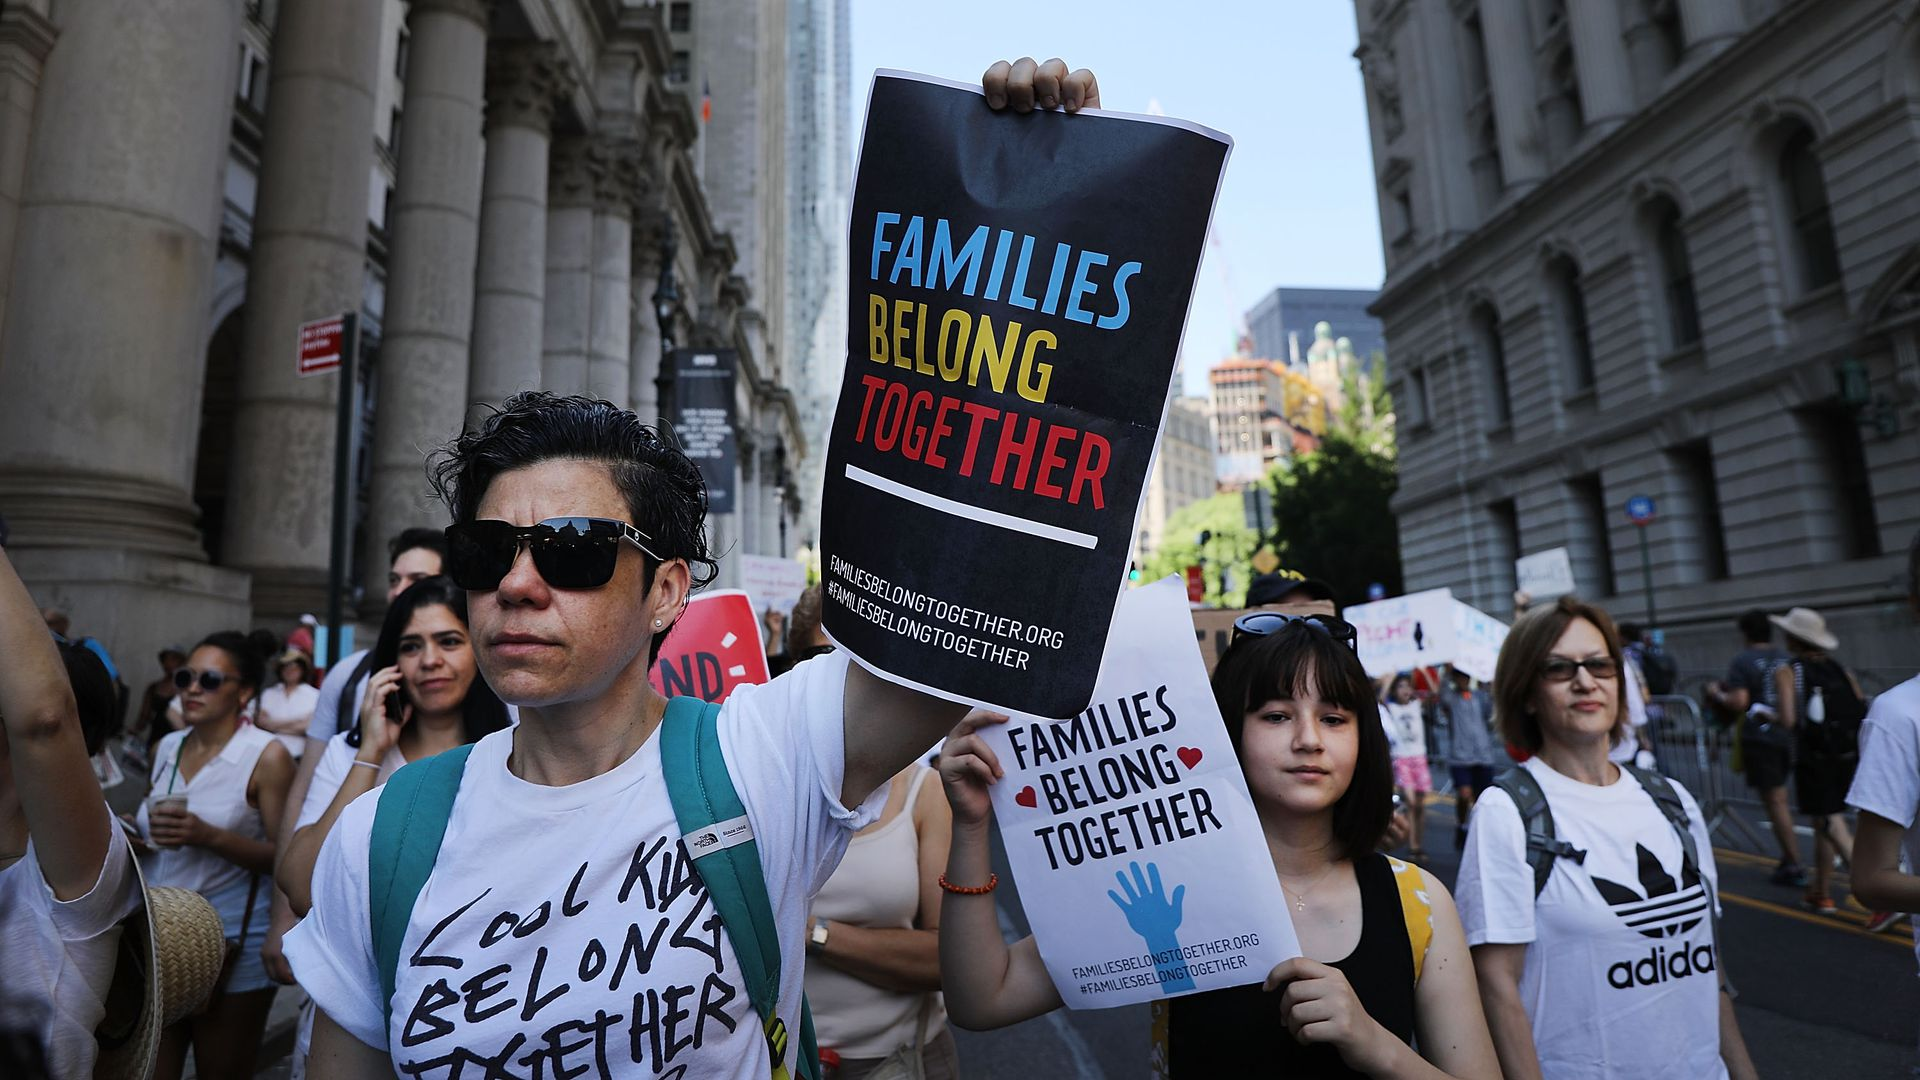 People protesting family separation in June 2018.